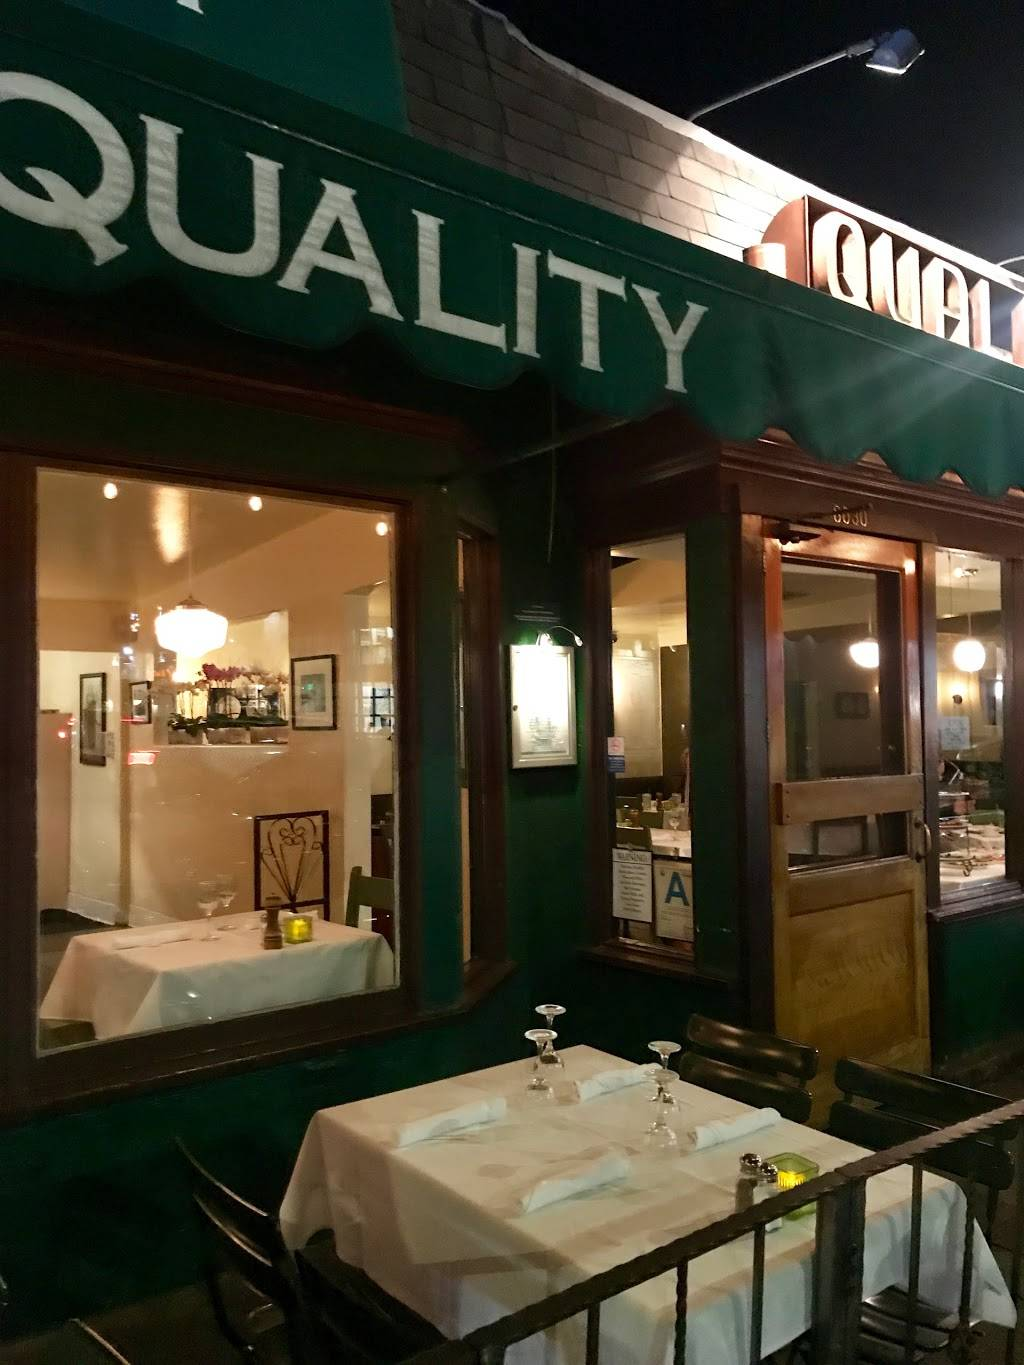 Quality Food & Beverage   restaurant   8030 W 3rd St, Los Angeles, CA 90048, USA   3236585959 OR +1 323-658-5959